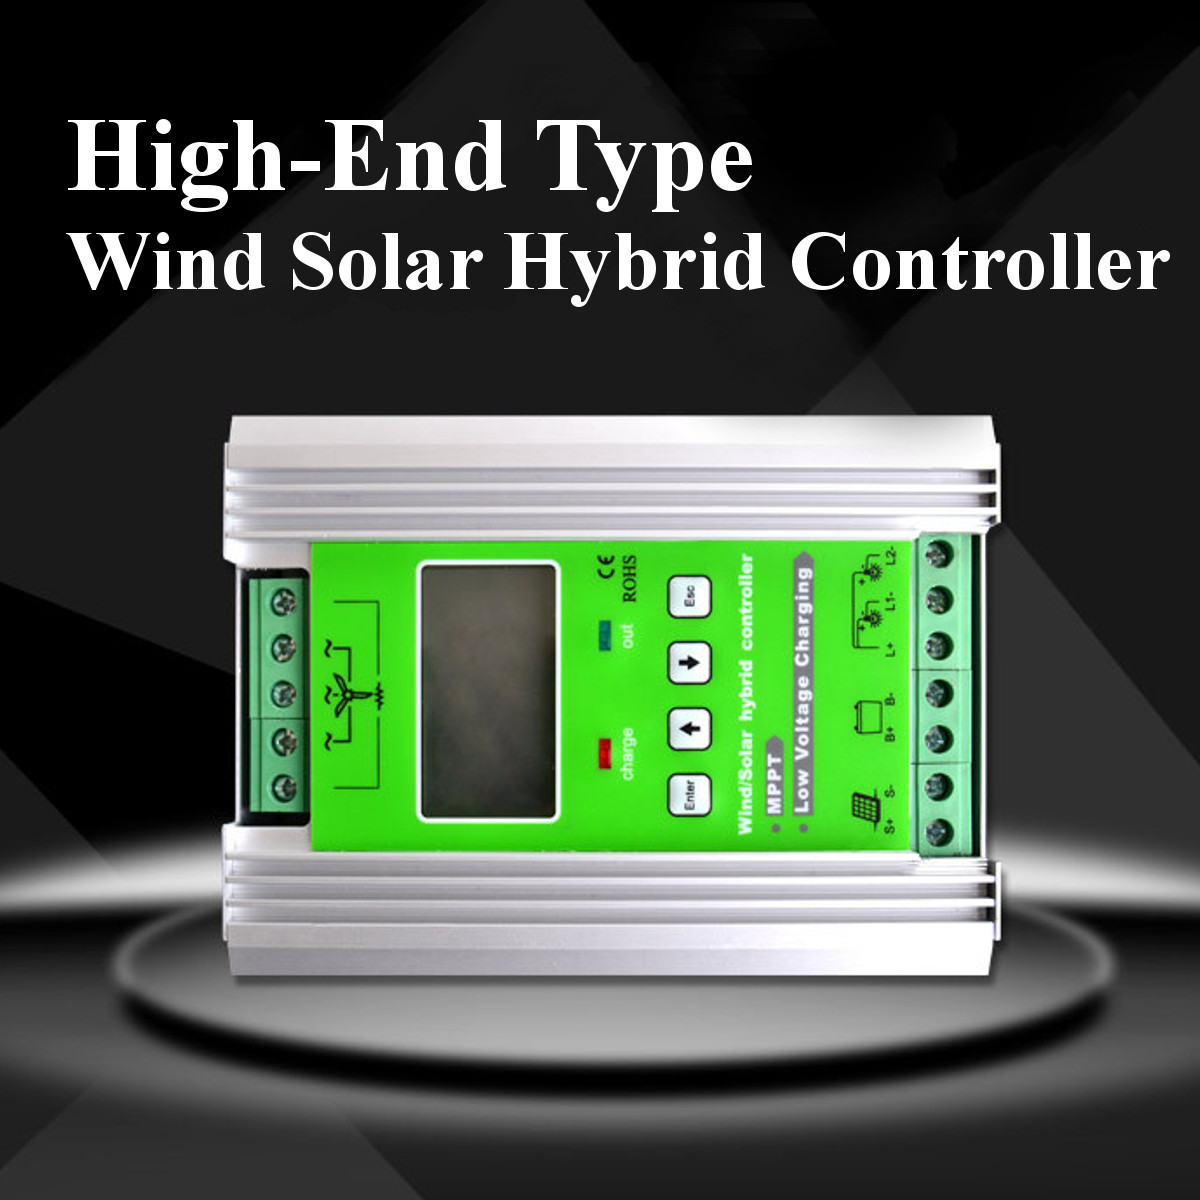 12v 24v Auto Boost Mppt Wind Solar Hybrid Controller 500w 300w Voltage 18v Open Frame Led Driver Circuit Diagram Shipping Methods